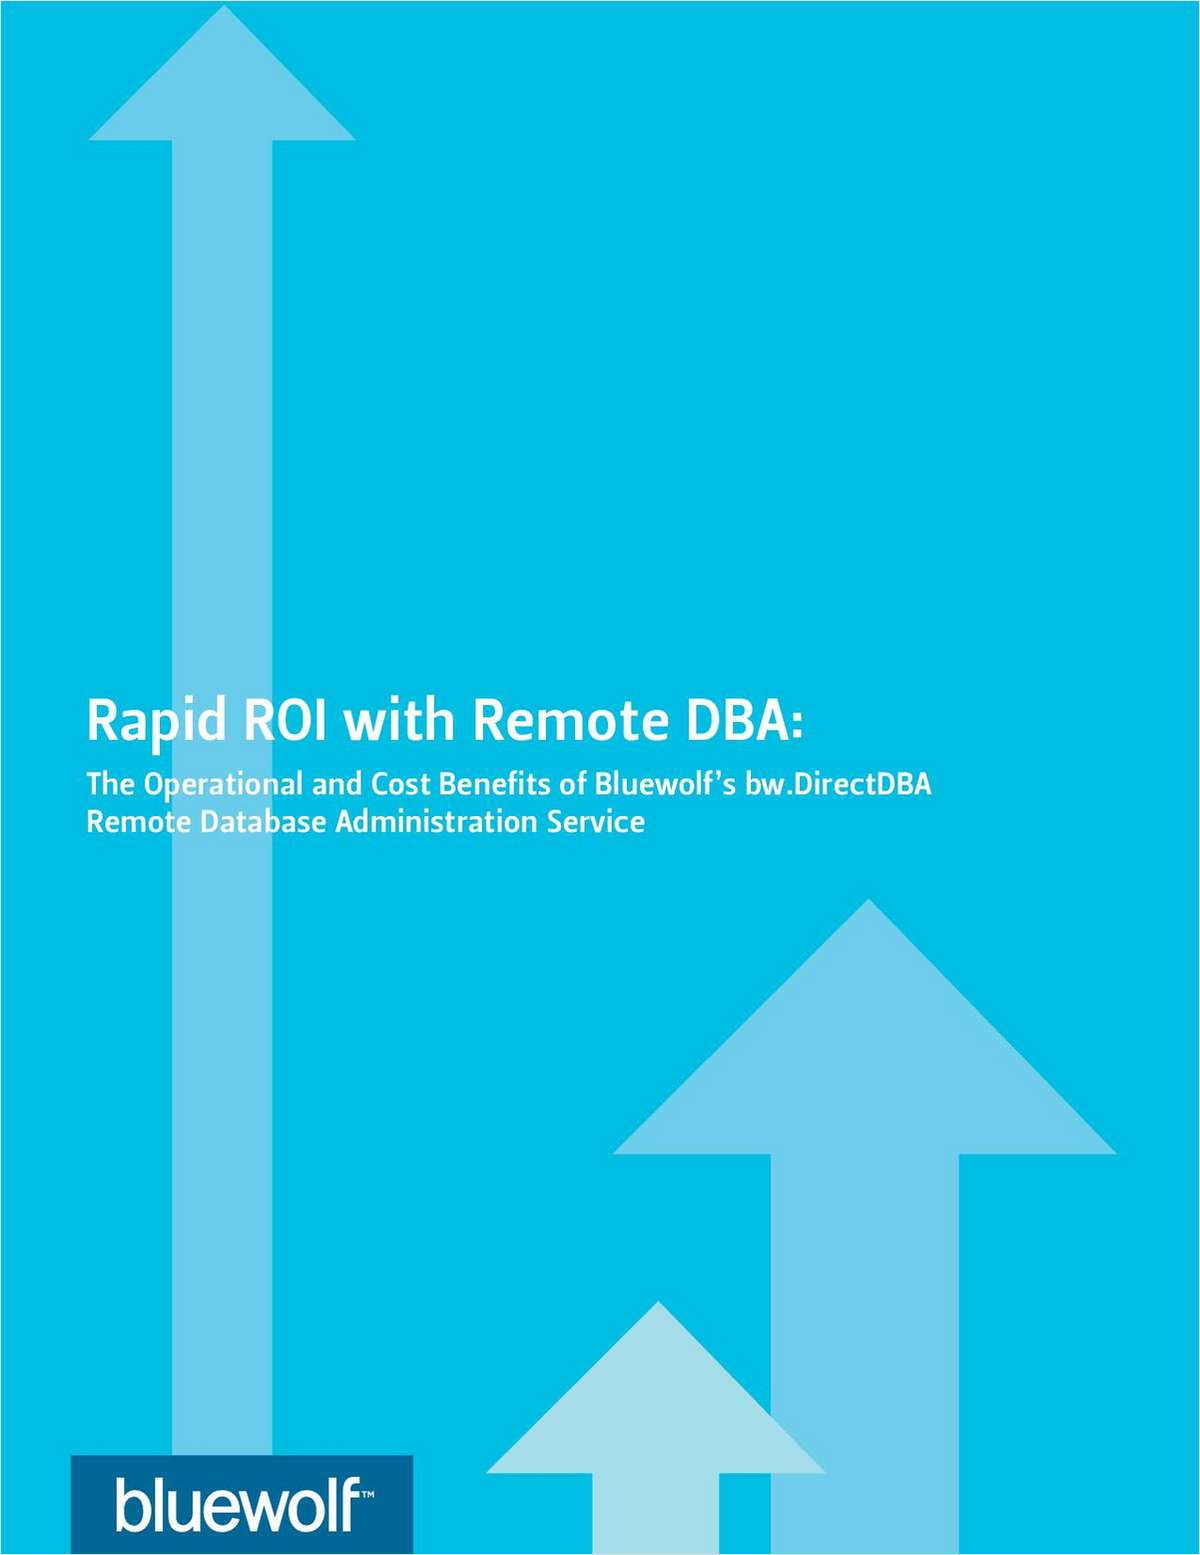 Rapid ROI with Remote DBA: The Operational and Cost Benefits of Remote Database Administration